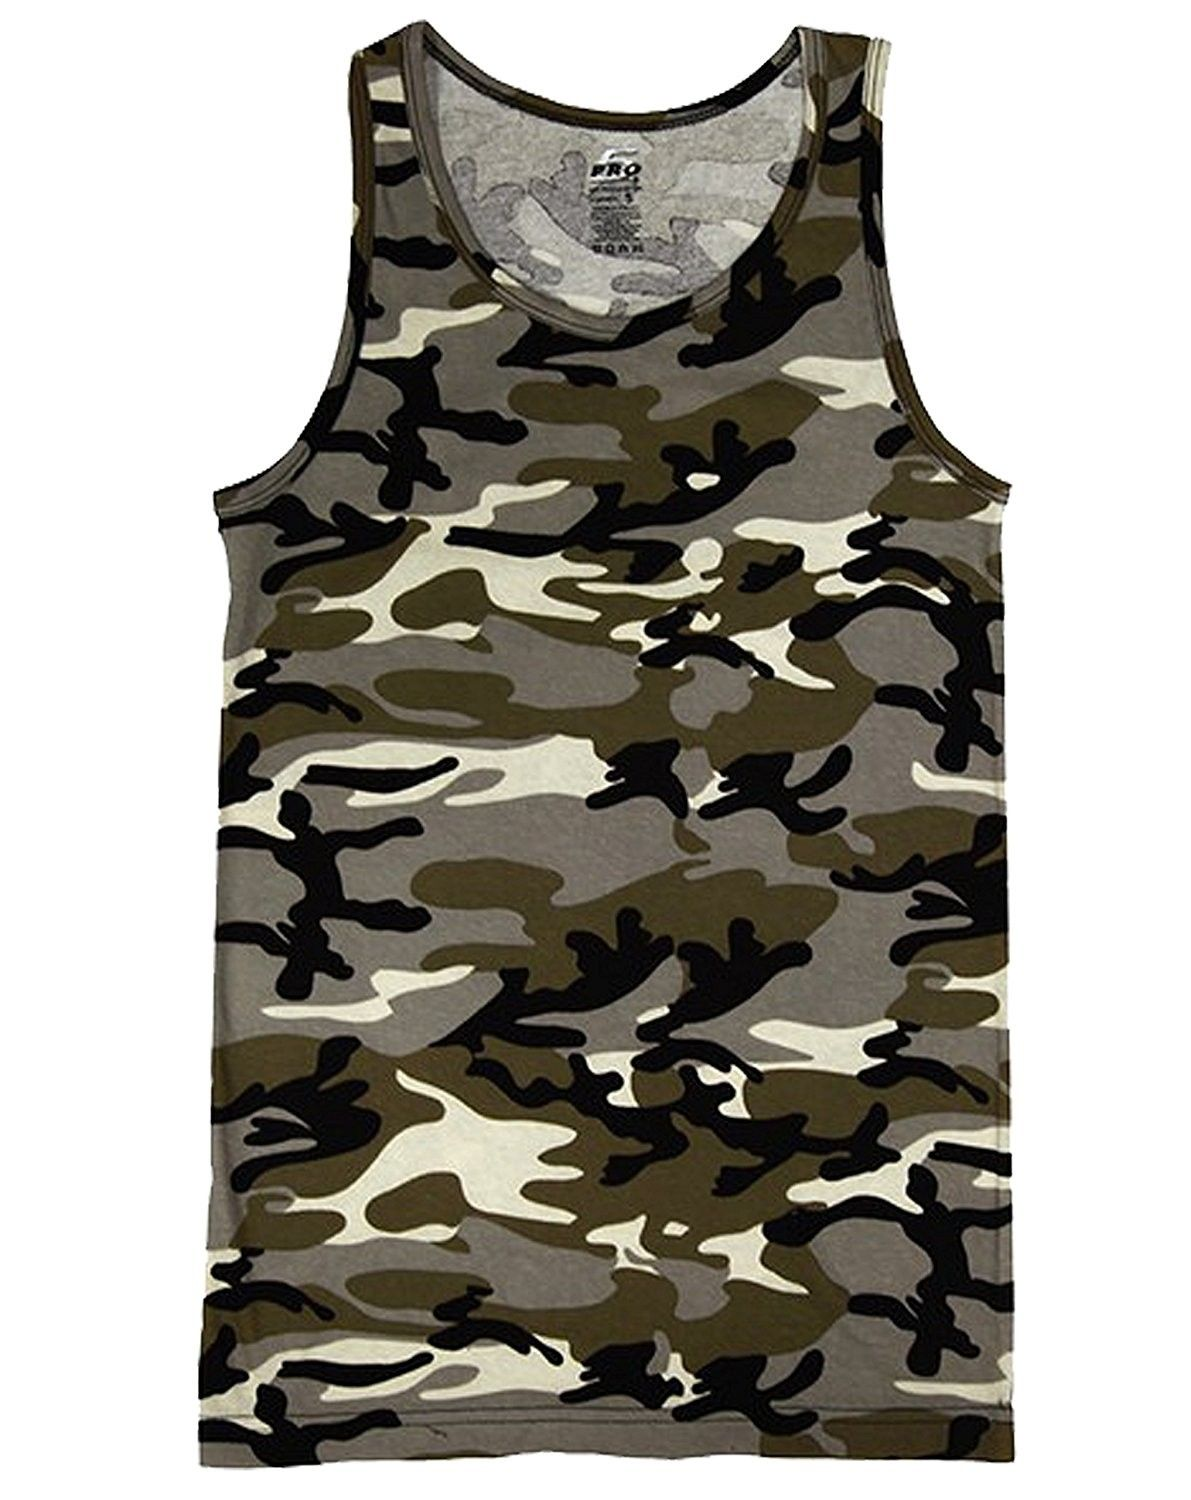 22d4227502e73 Men's Clothing, Shirts, Tank Tops, Mens Camo Muscle Tank Top Gym Work Out  Super Thick 3 Pack - Desert Camo - CQ12IRIP05N #fashion #Shirts #men  #outfits ...